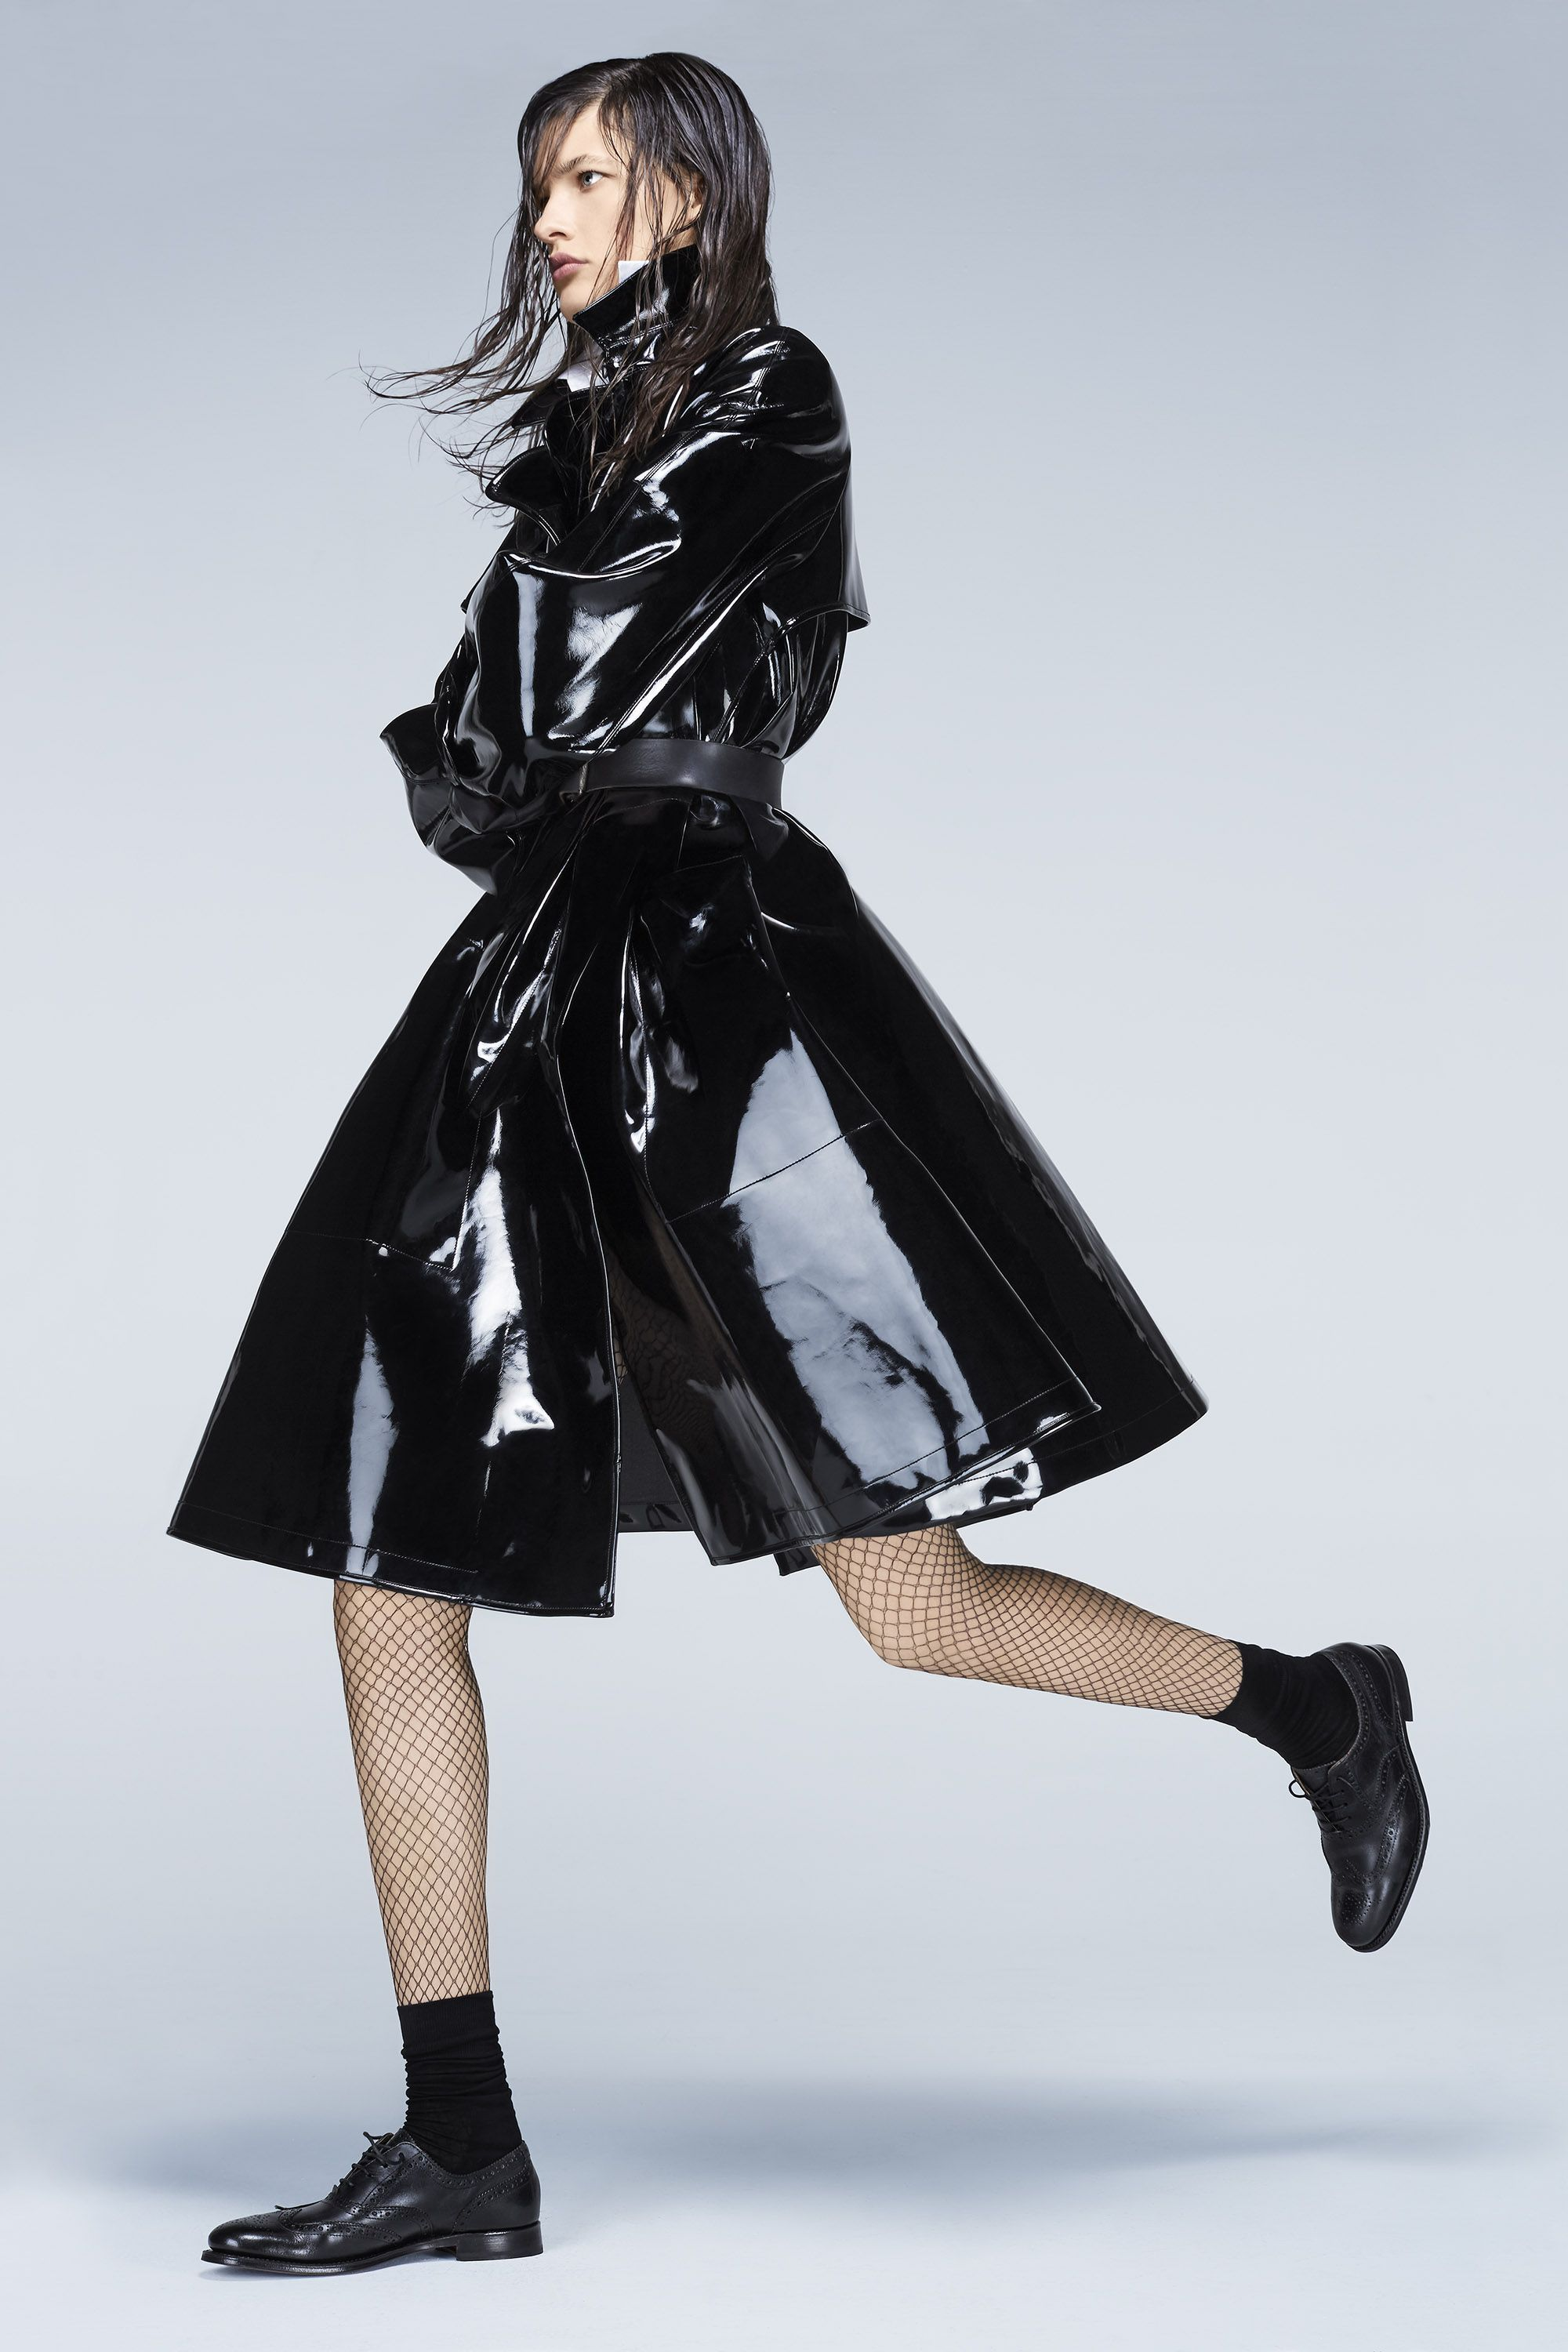 "<p><strong>Giorgio Armani </strong>coat, $6,195, and shirt, $825, 212-988-9191; Stylist's own belt; <strong>Wolford</strong> tights, $57, and socks, $29, <a href=""http://company.wolford.com/?lang=en"" target=""_blank"">wolford.com</a>; <strong>Grenson</strong> shoes, $420, <a href=""http://www.grenson.com/us/"" target=""_blank"">grenson.com</a>. </p>"